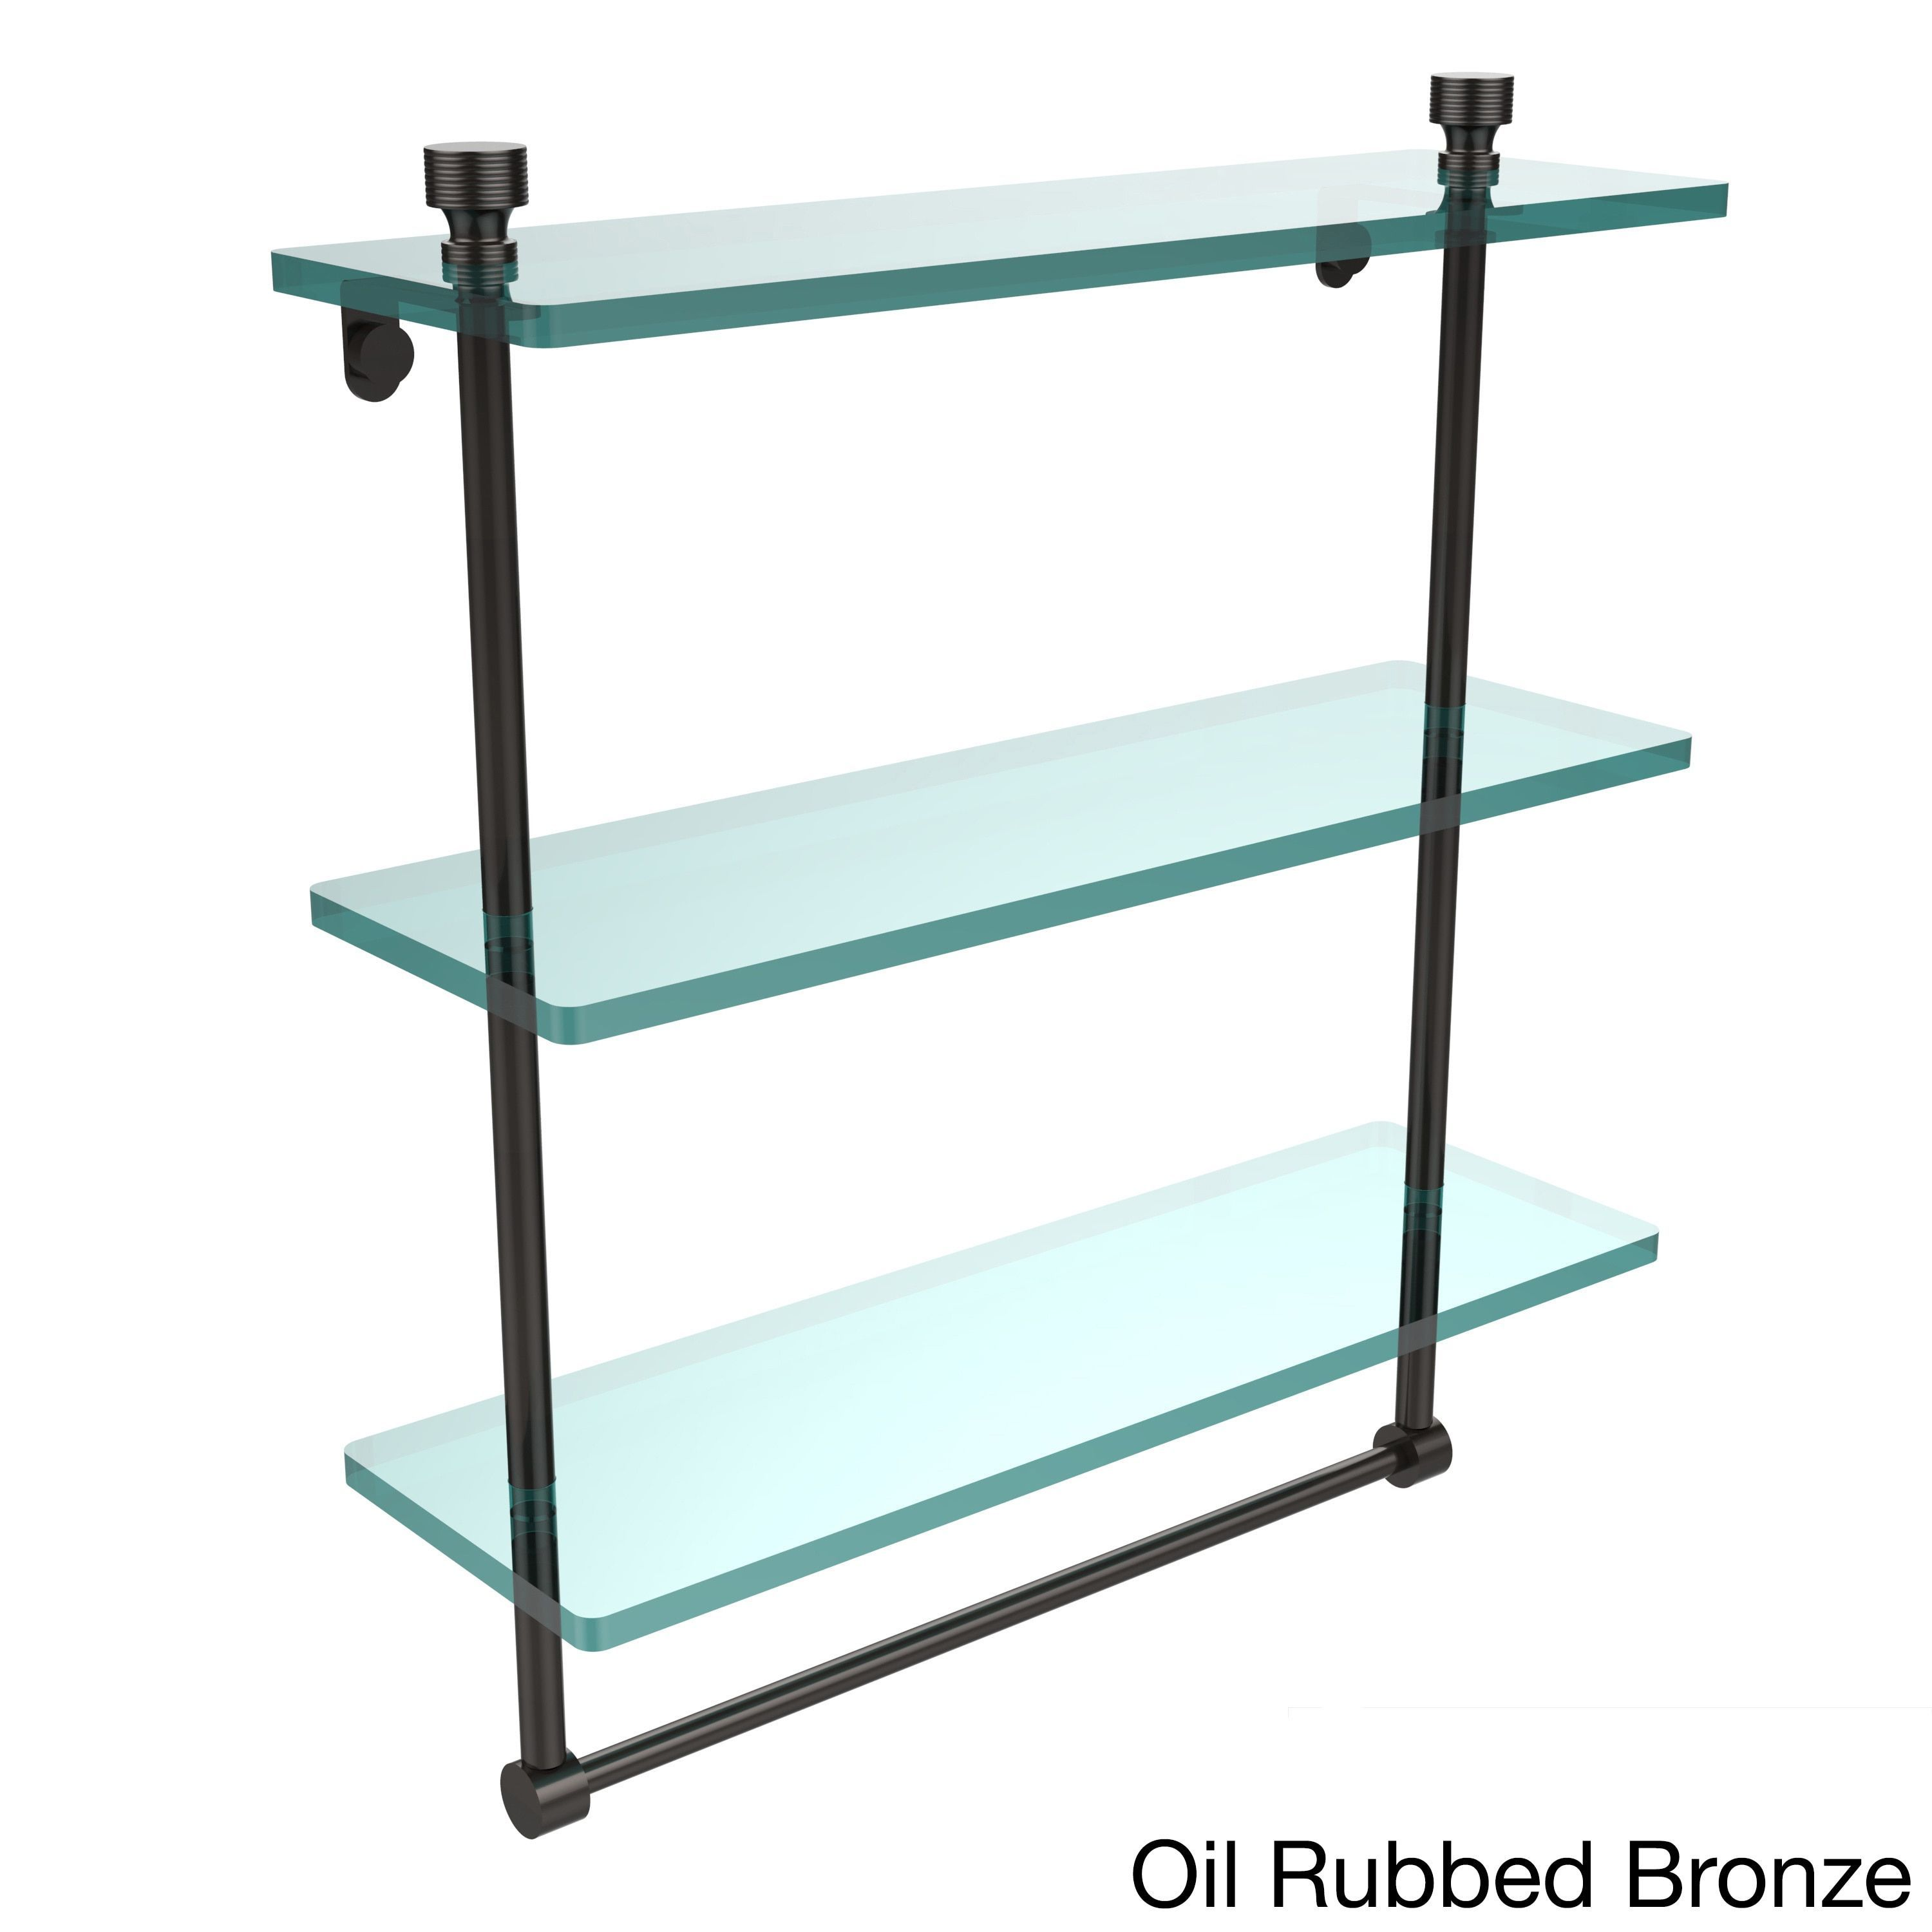 Allied Foxtrot Collection 16-inch 3-tiered Glass Shelf with Integrated Towel Bar